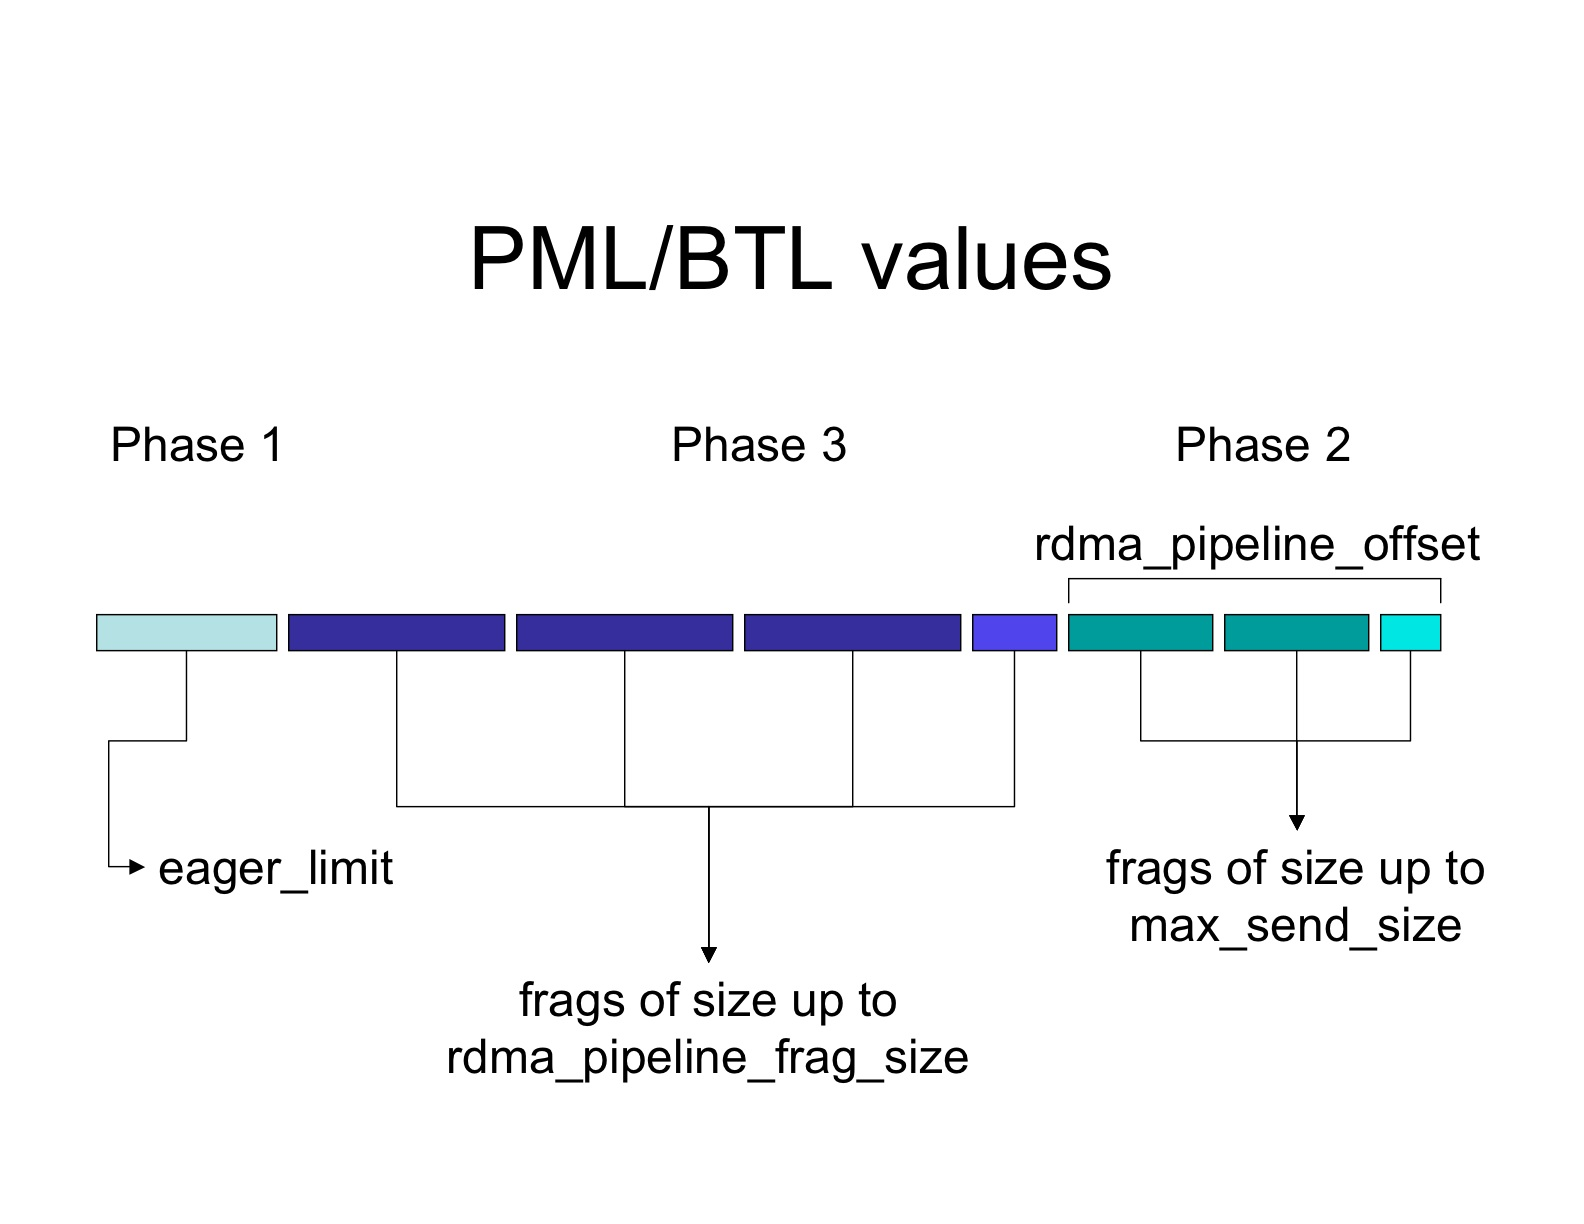 pml-btl-values.jpg